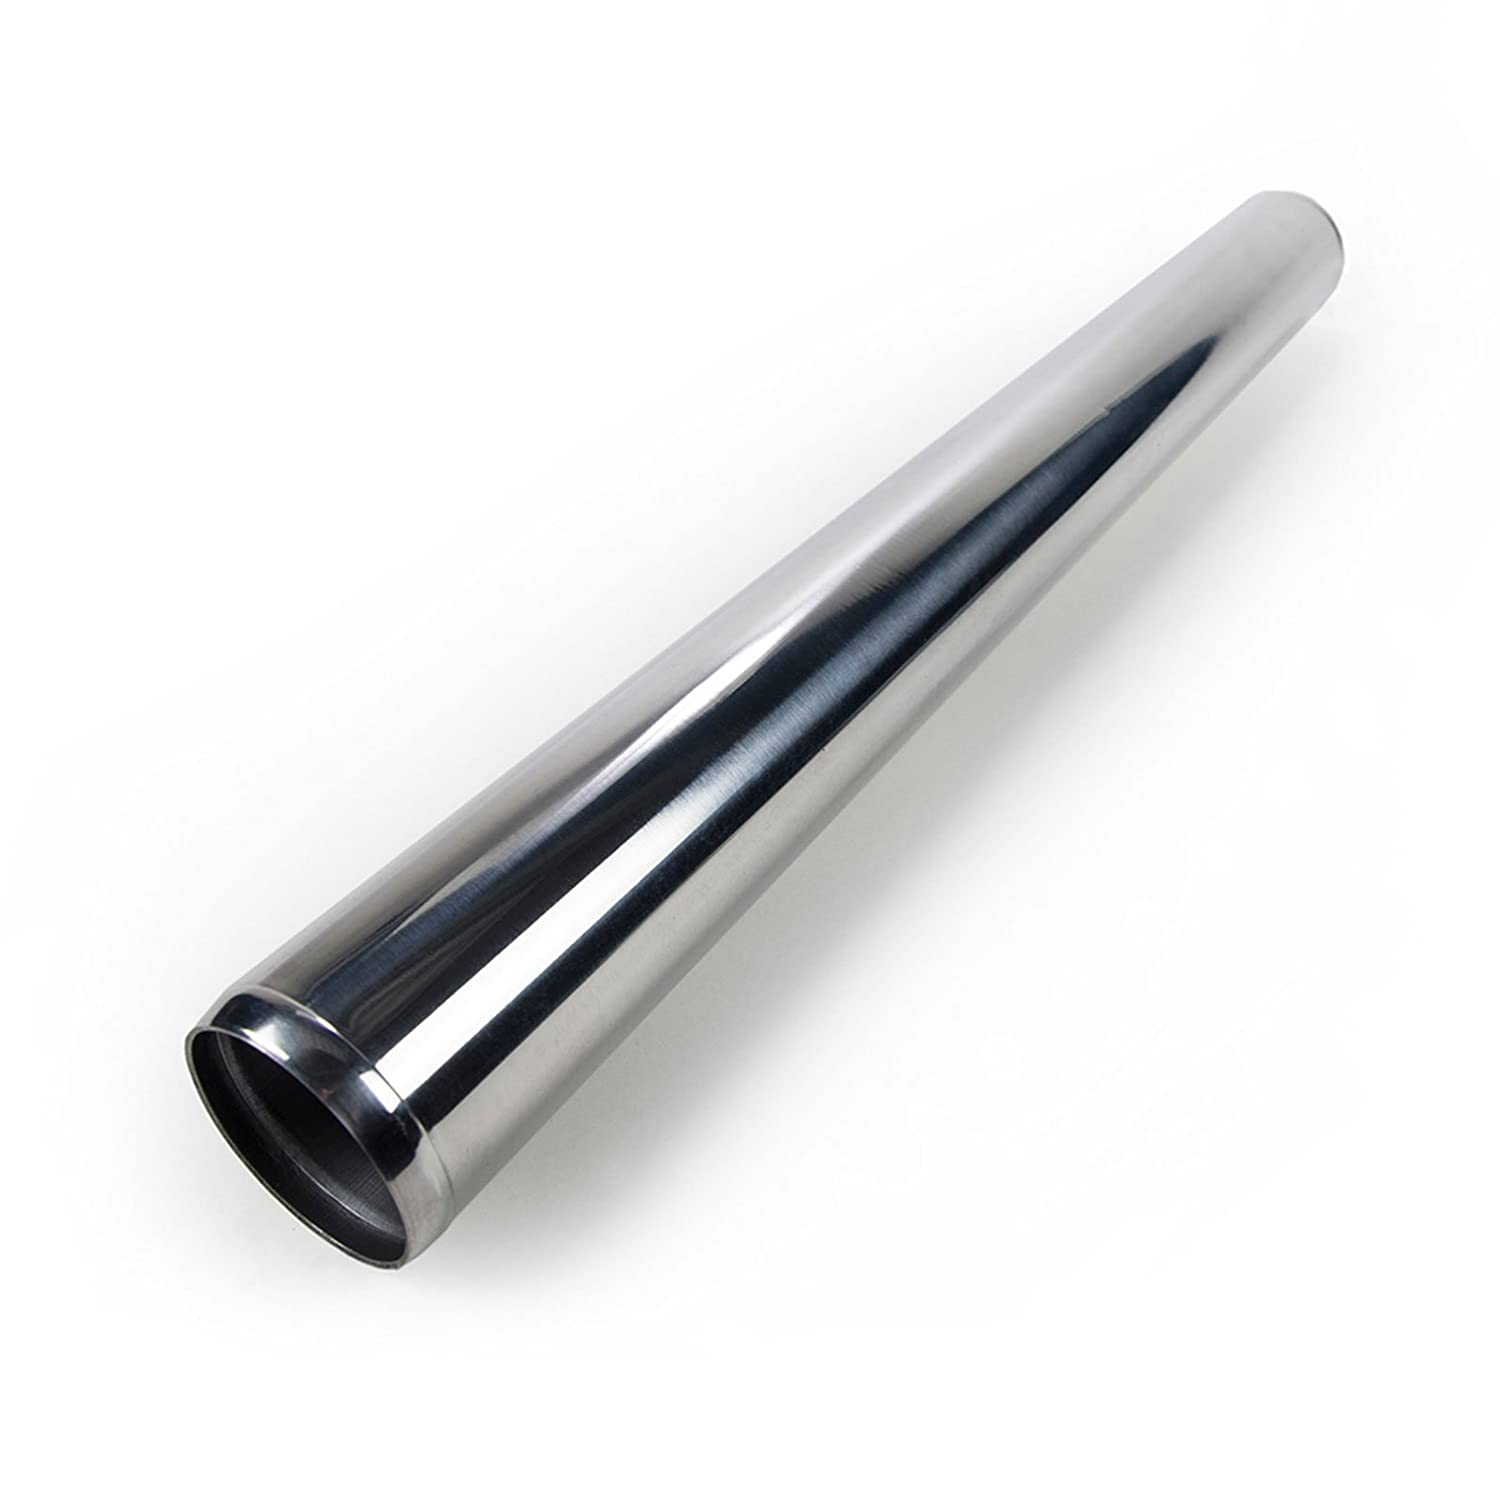 2.5' Straight Aluminum Pipe Tube 2 Feet Length Turbo Tubing Intercooler Piping Squirrelly Performance Parts